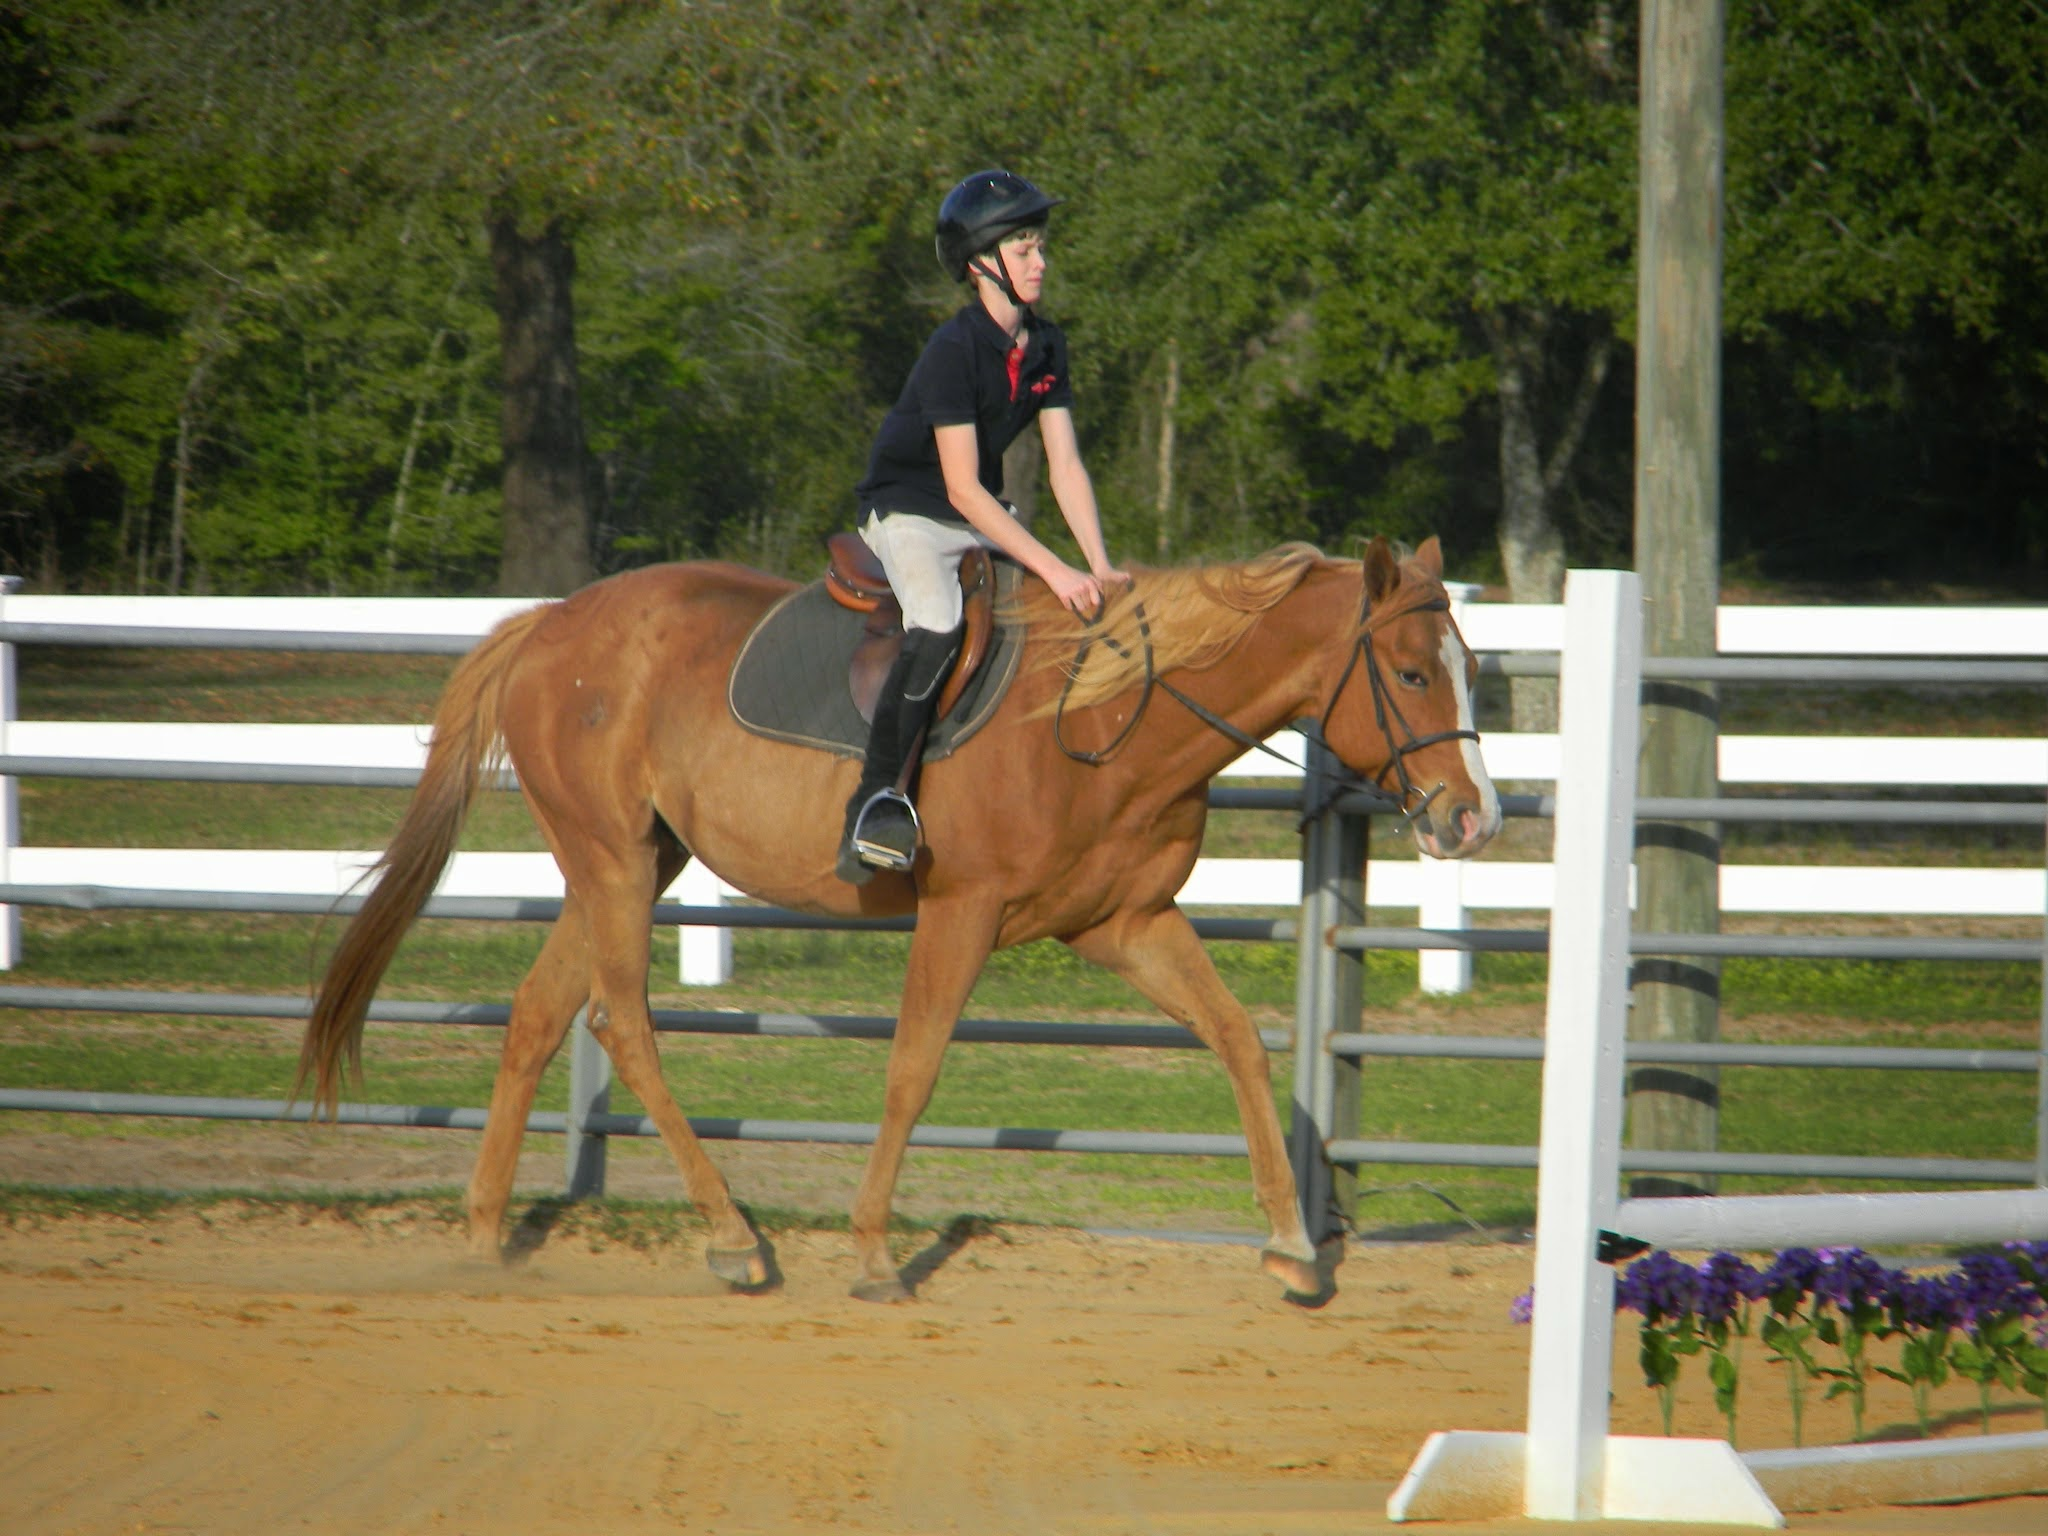 Beginner riders at CV Equestrian love riding Bullseye because he takes such great care of them.